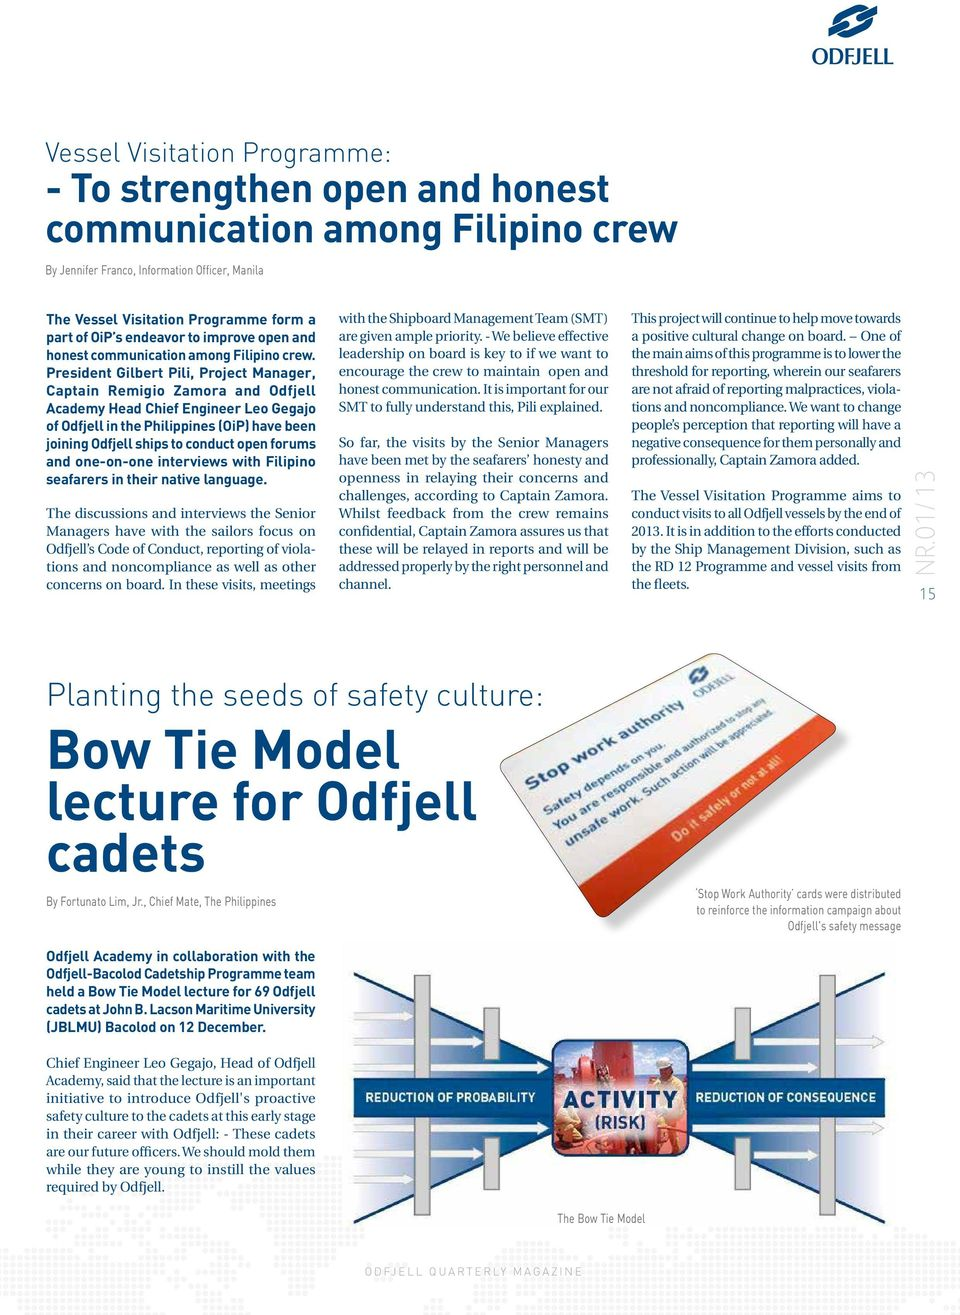 President Gilbert Pili, Project Manager, Captain Remigio Zamora and Odfjell Academy Head Chief Engineer Leo Gegajo of Odfjell in the Philippines (OiP) have been joining Odfjell ships to conduct open